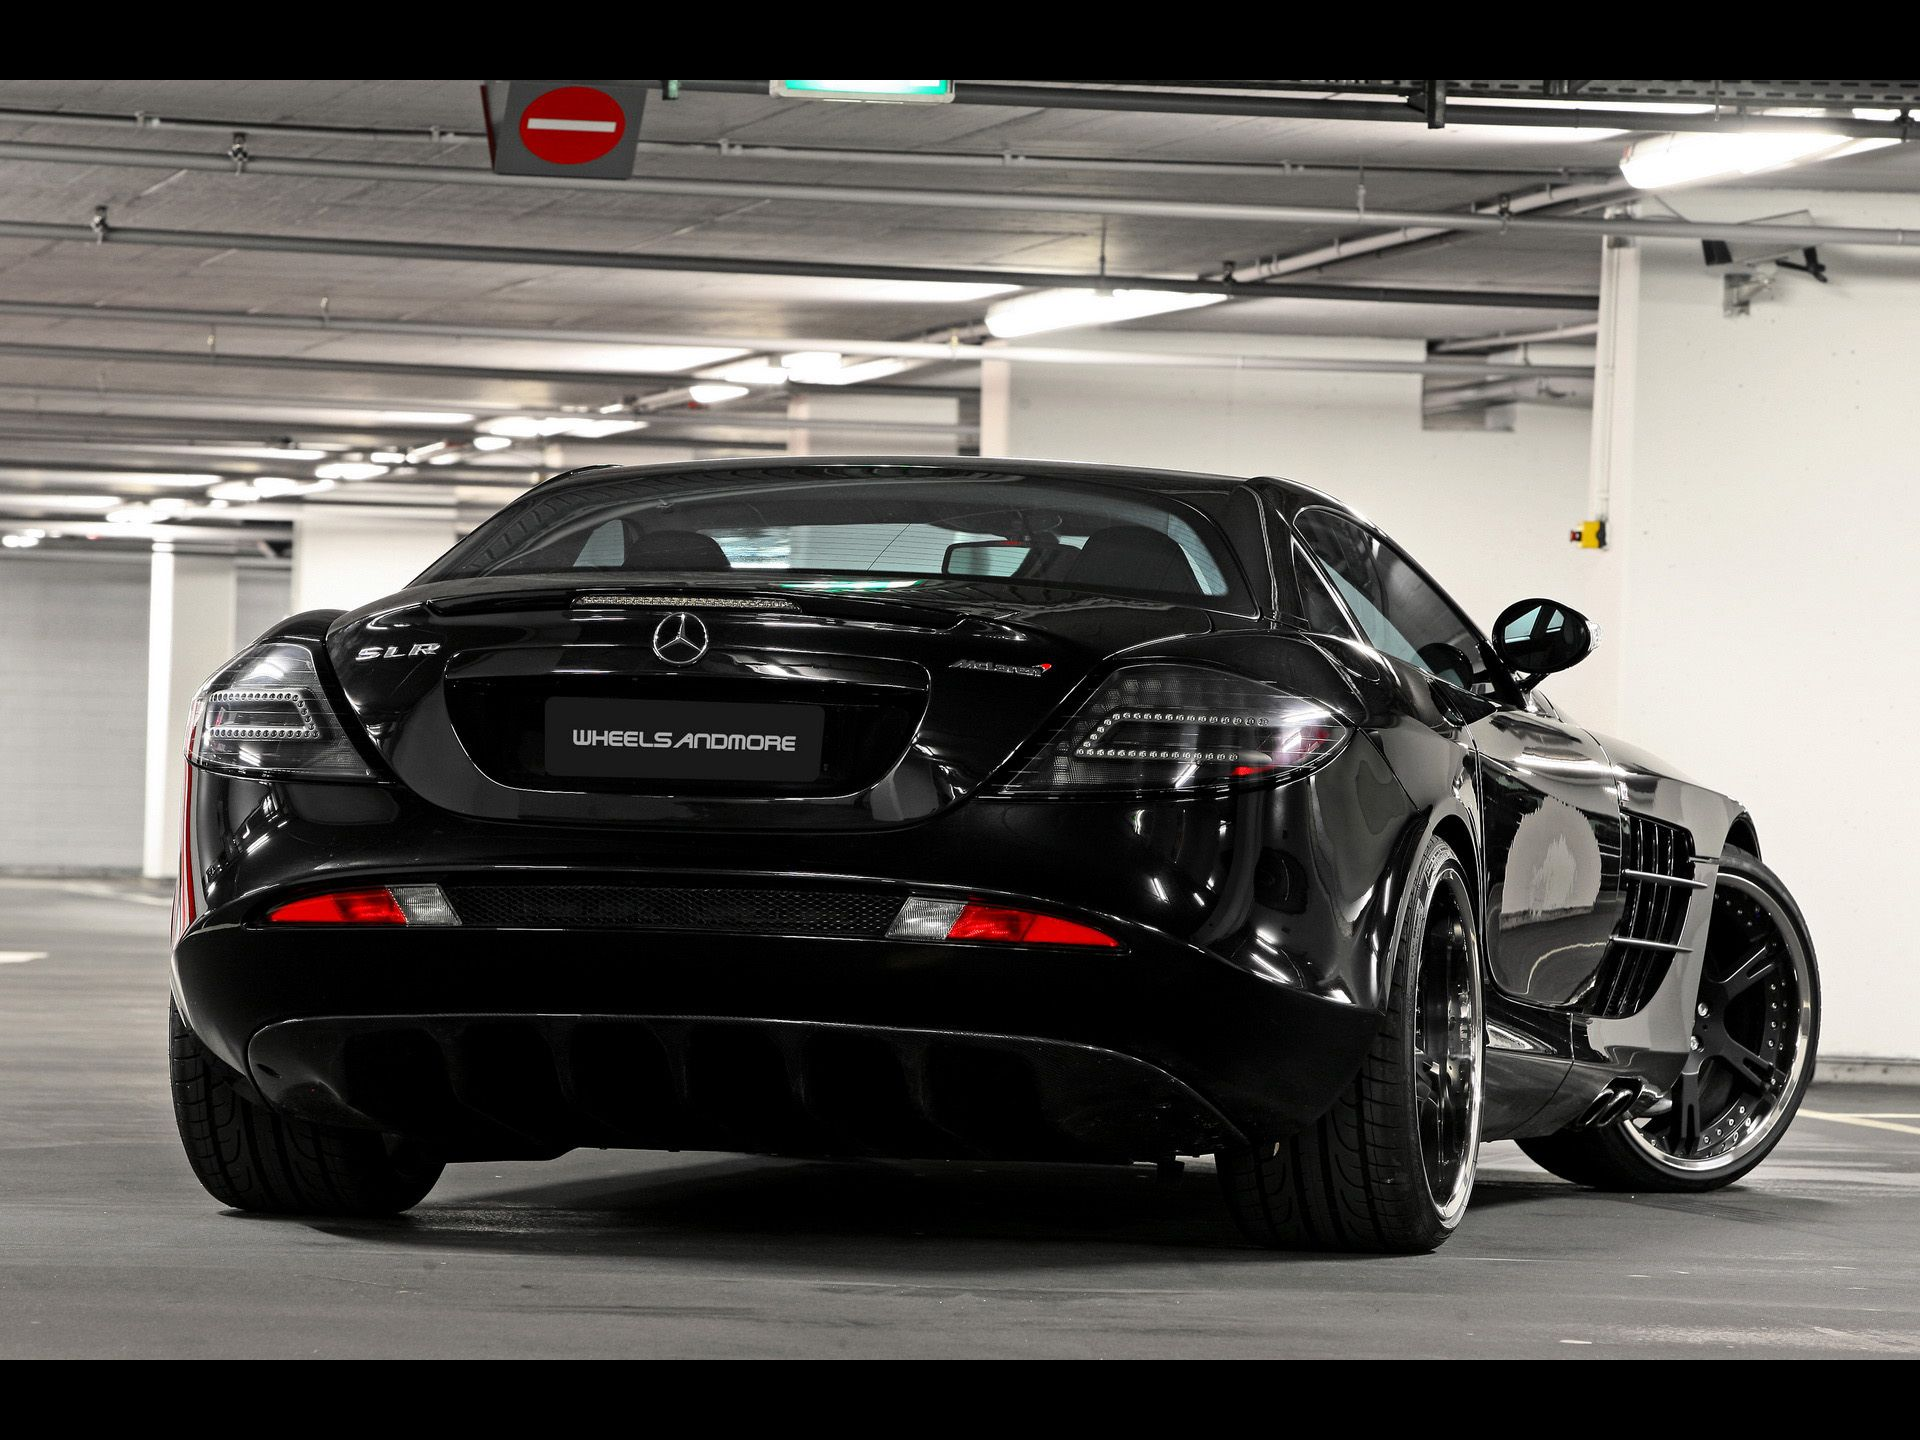 2012 Wheelsandmore Mercedes Benz Slr Mclaren 722 Epochal Rear